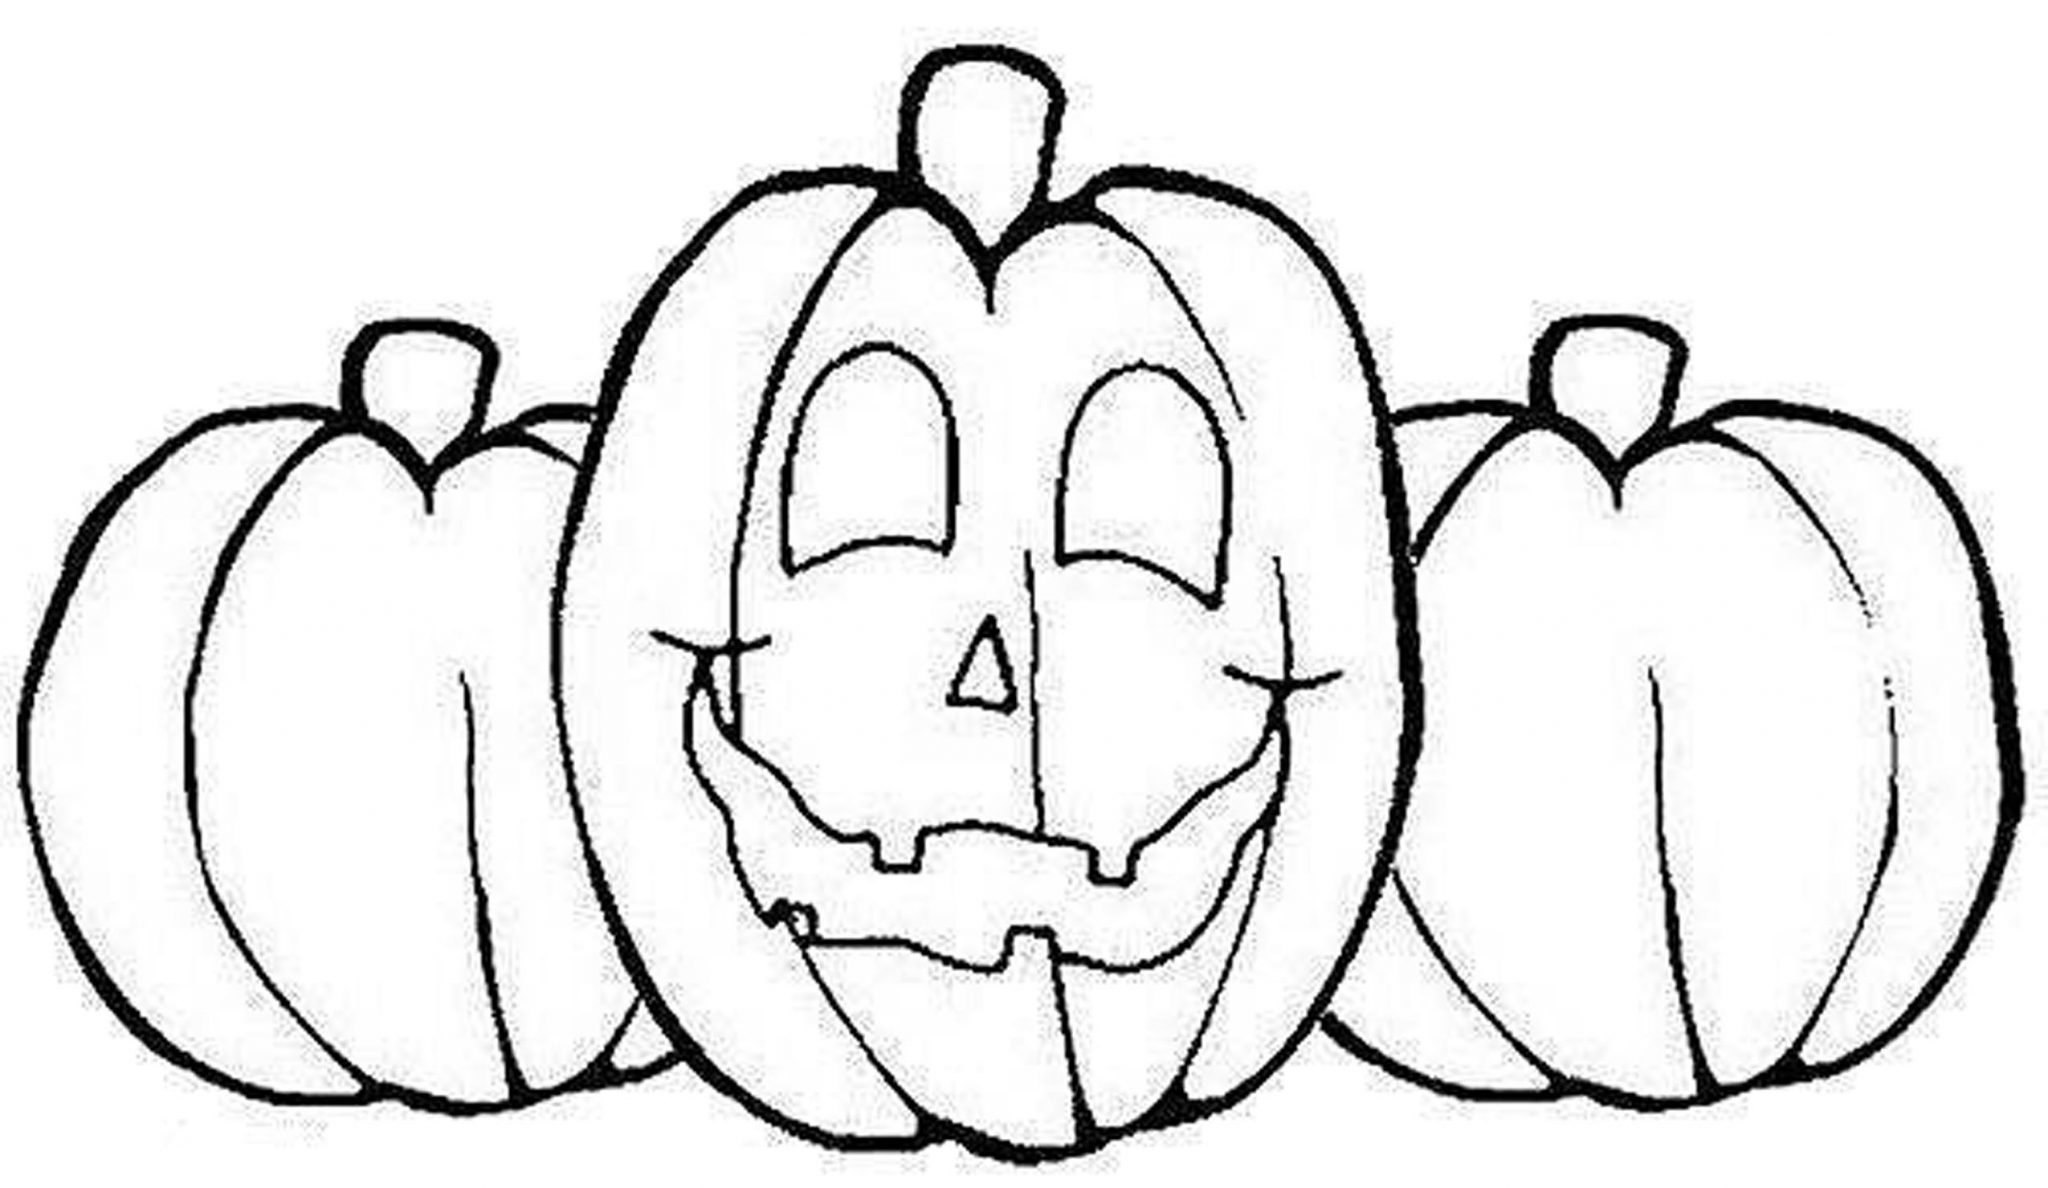 pumpkin pictures to print free printable pumpkin coloring pages for kids to pictures pumpkin print